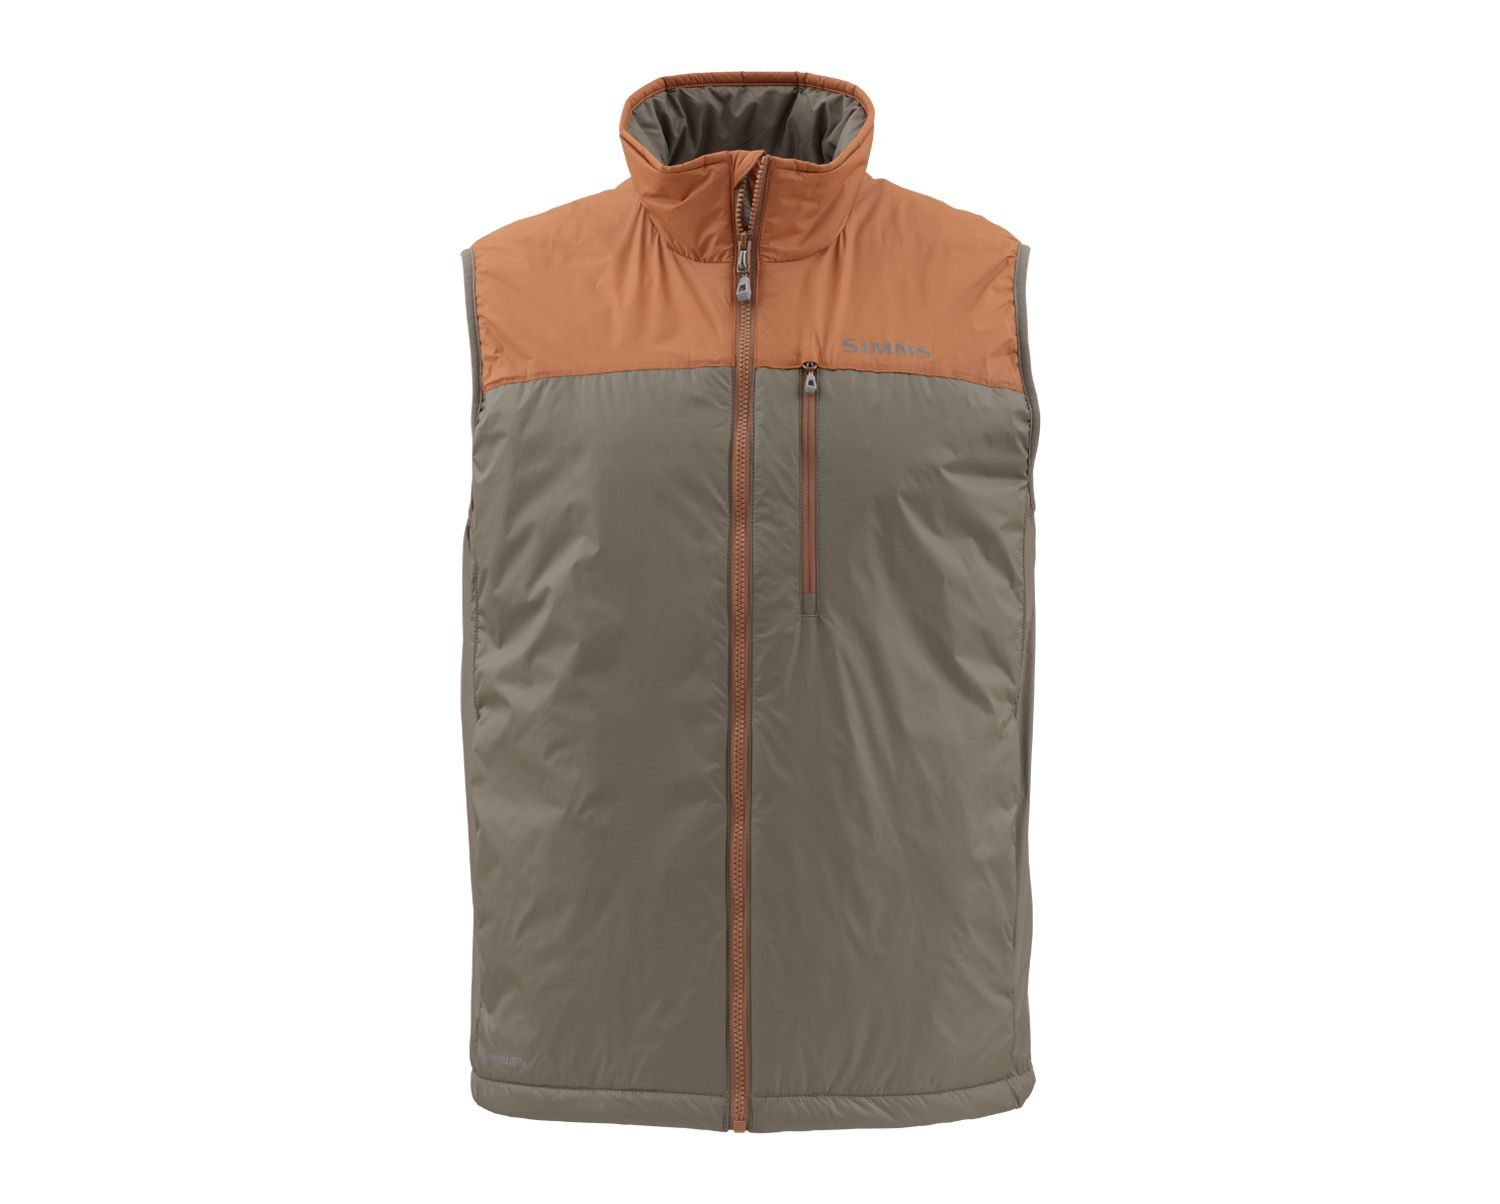 Simms Midstream Insulated Vest - Saddle Brown_1.jpg